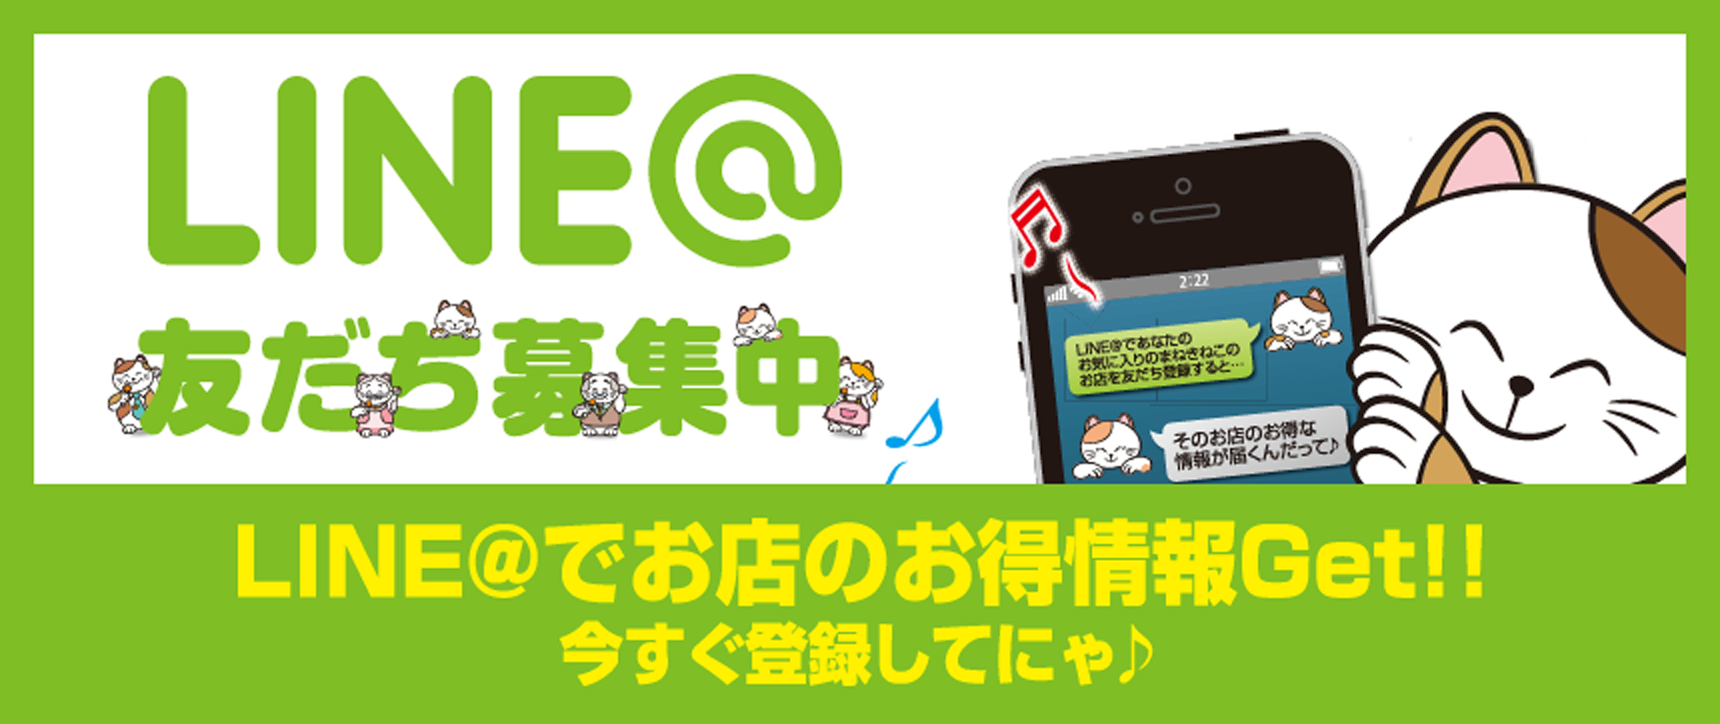 LINE@でお店のお得情報Get!!今すぐ登録してにゃ♪